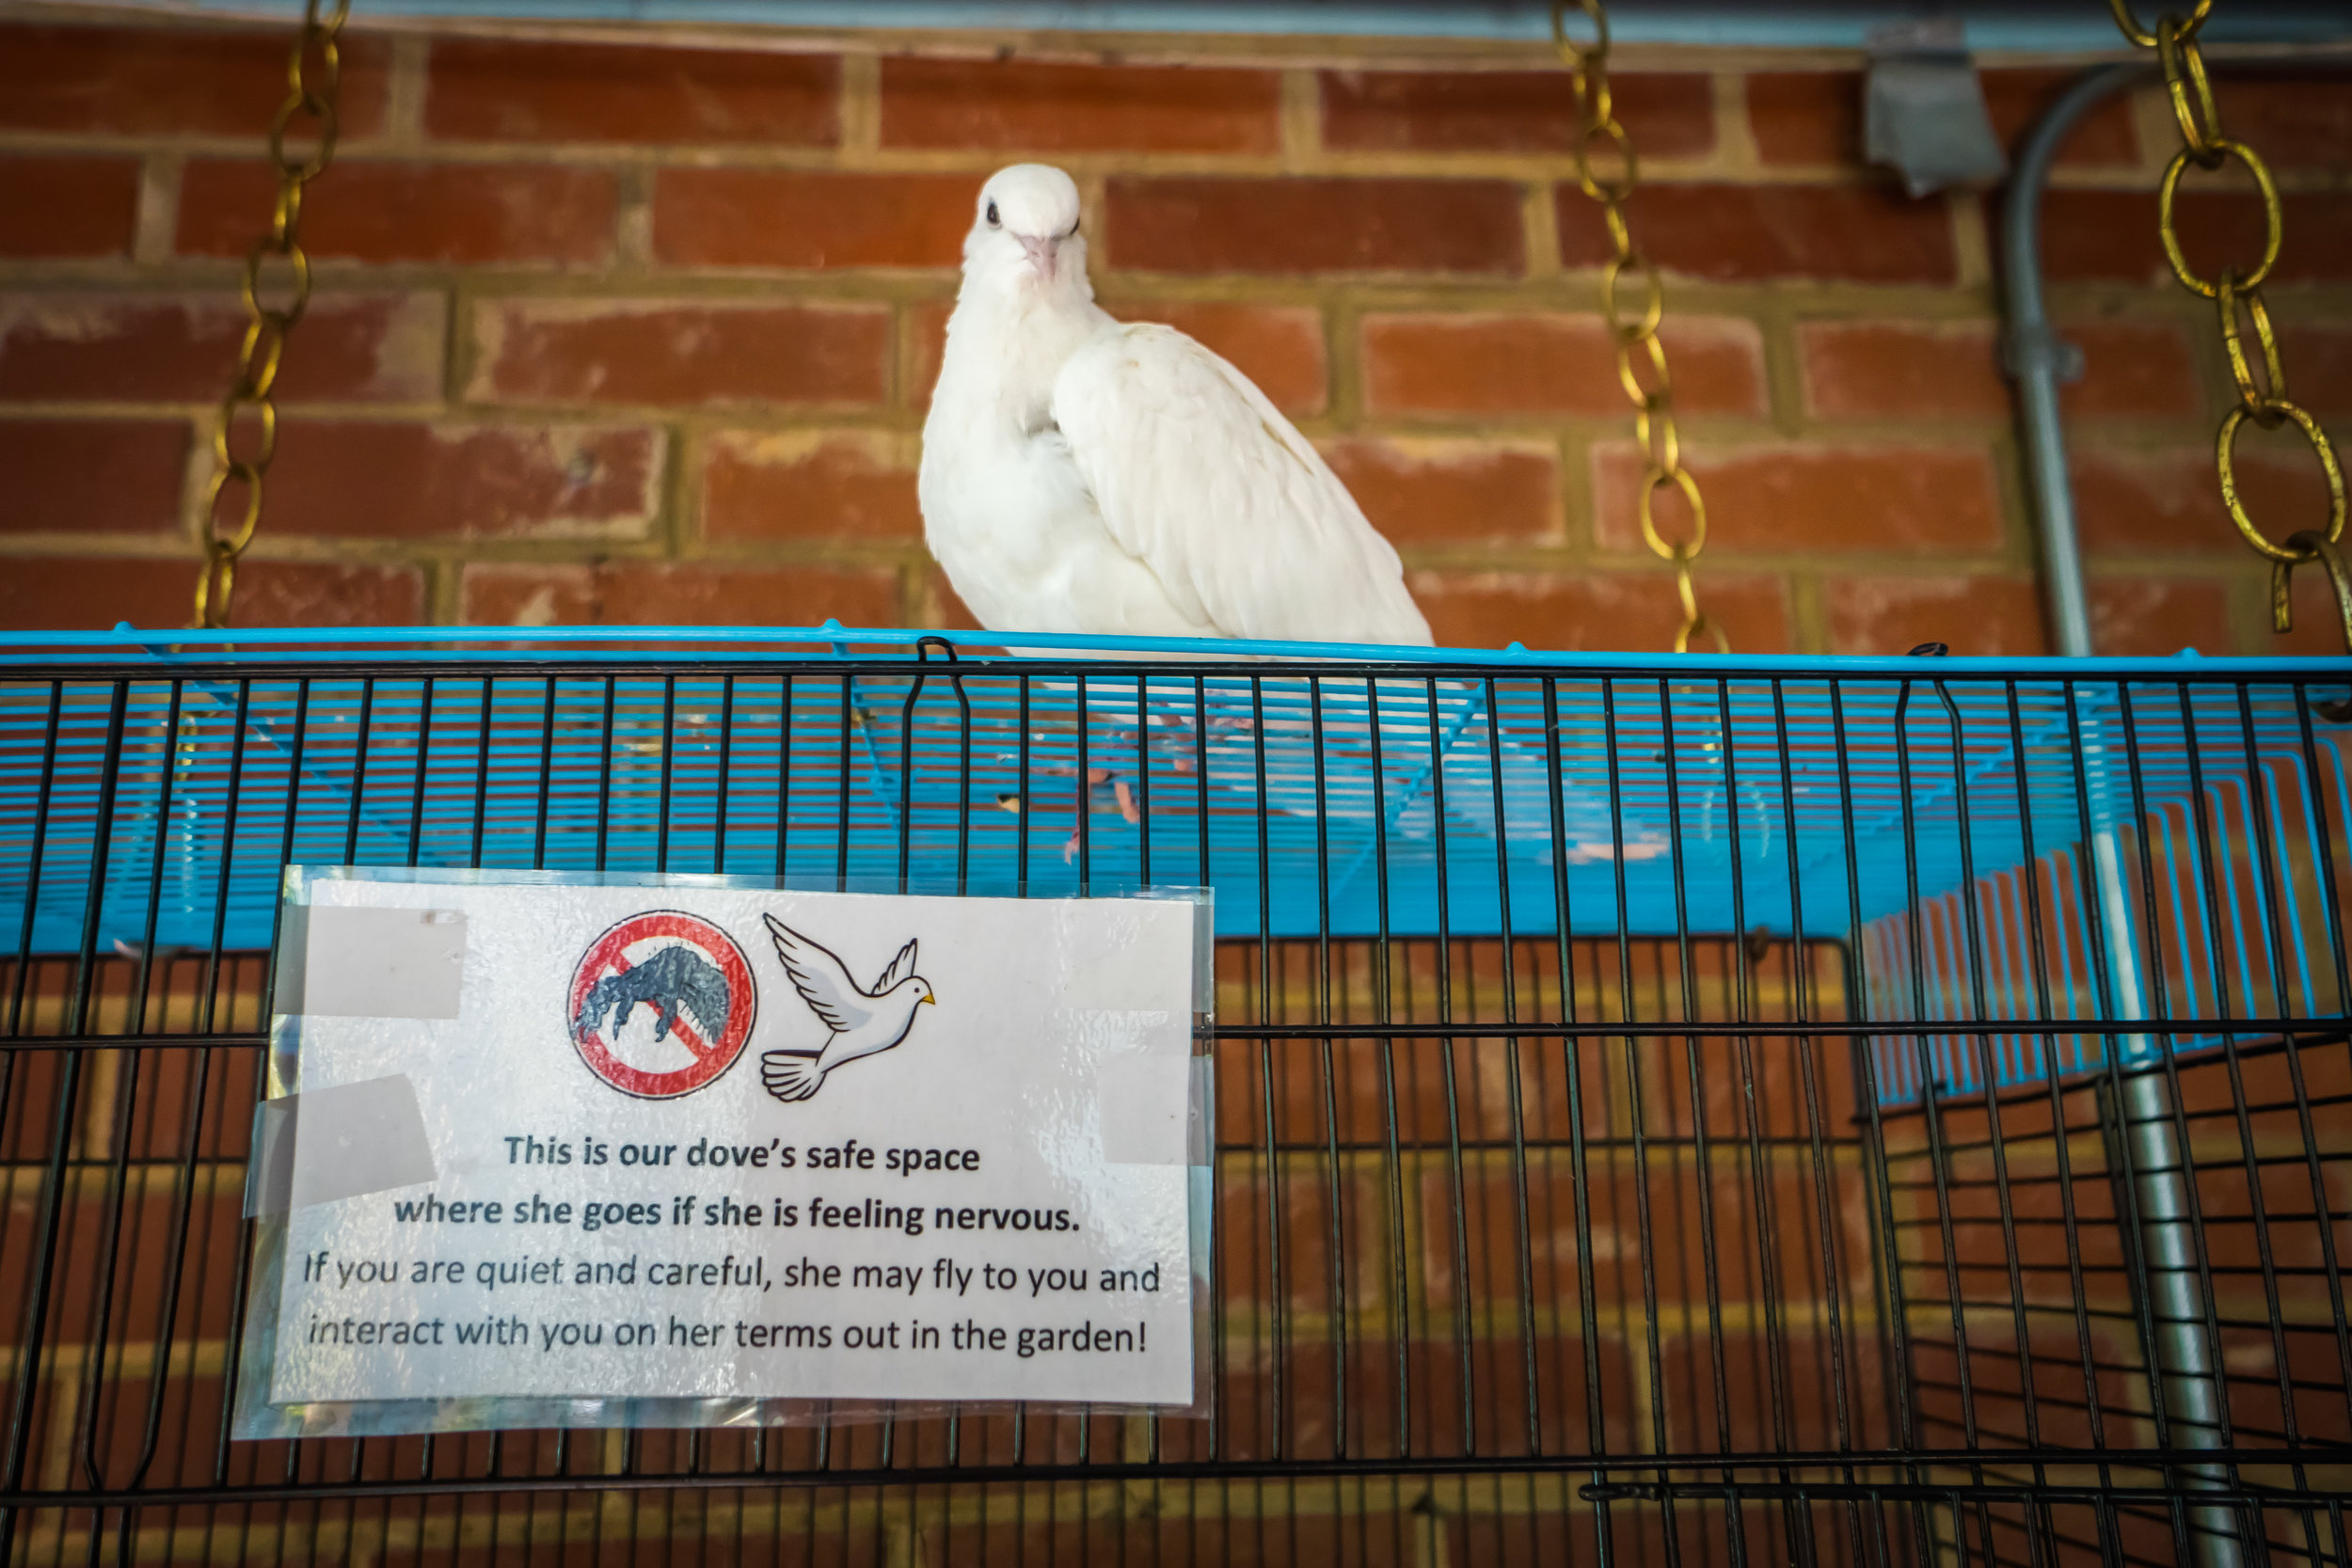 The Dove's Safe Space